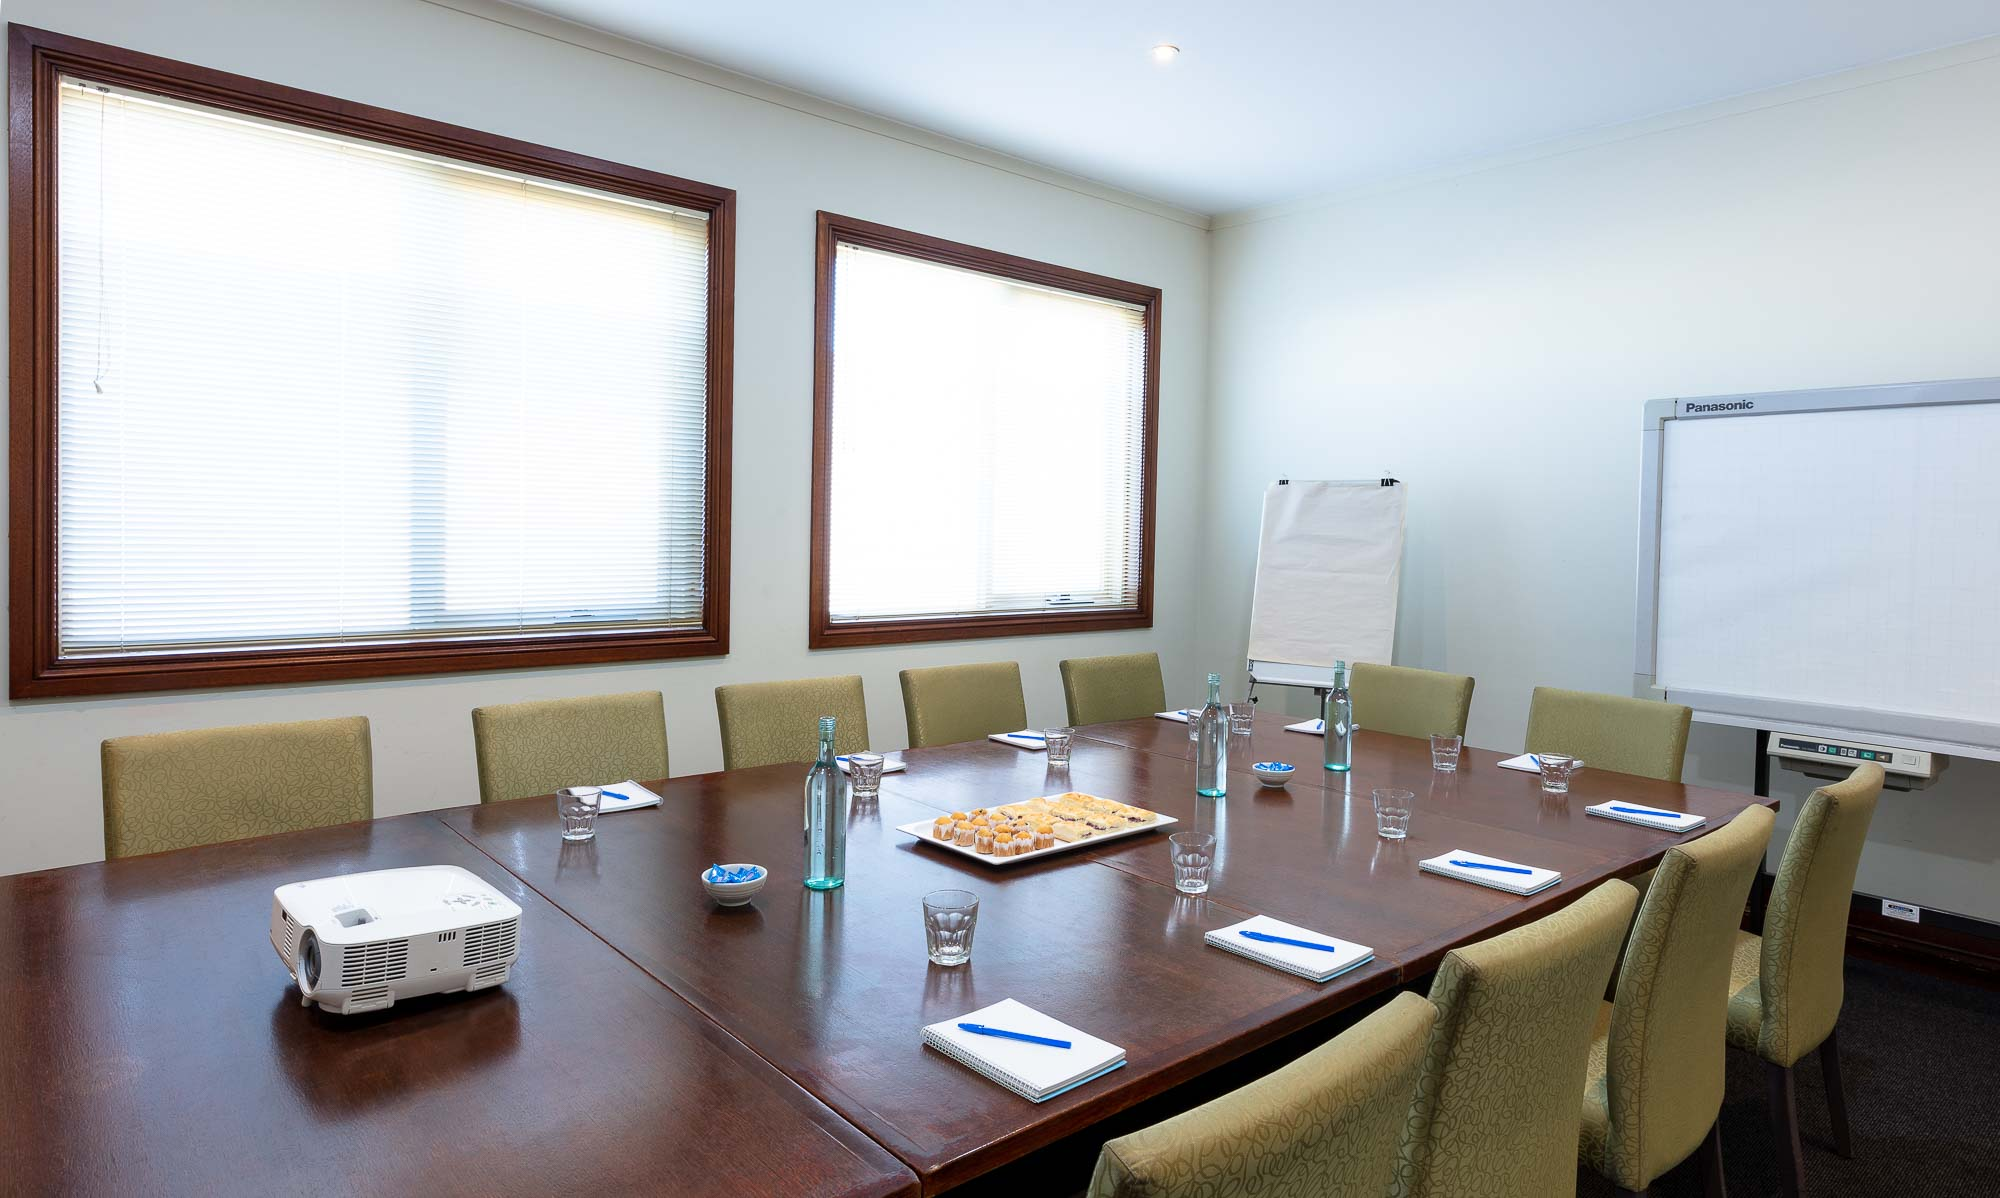 Commercial photography sample - Wantirna Club meeting room empty room